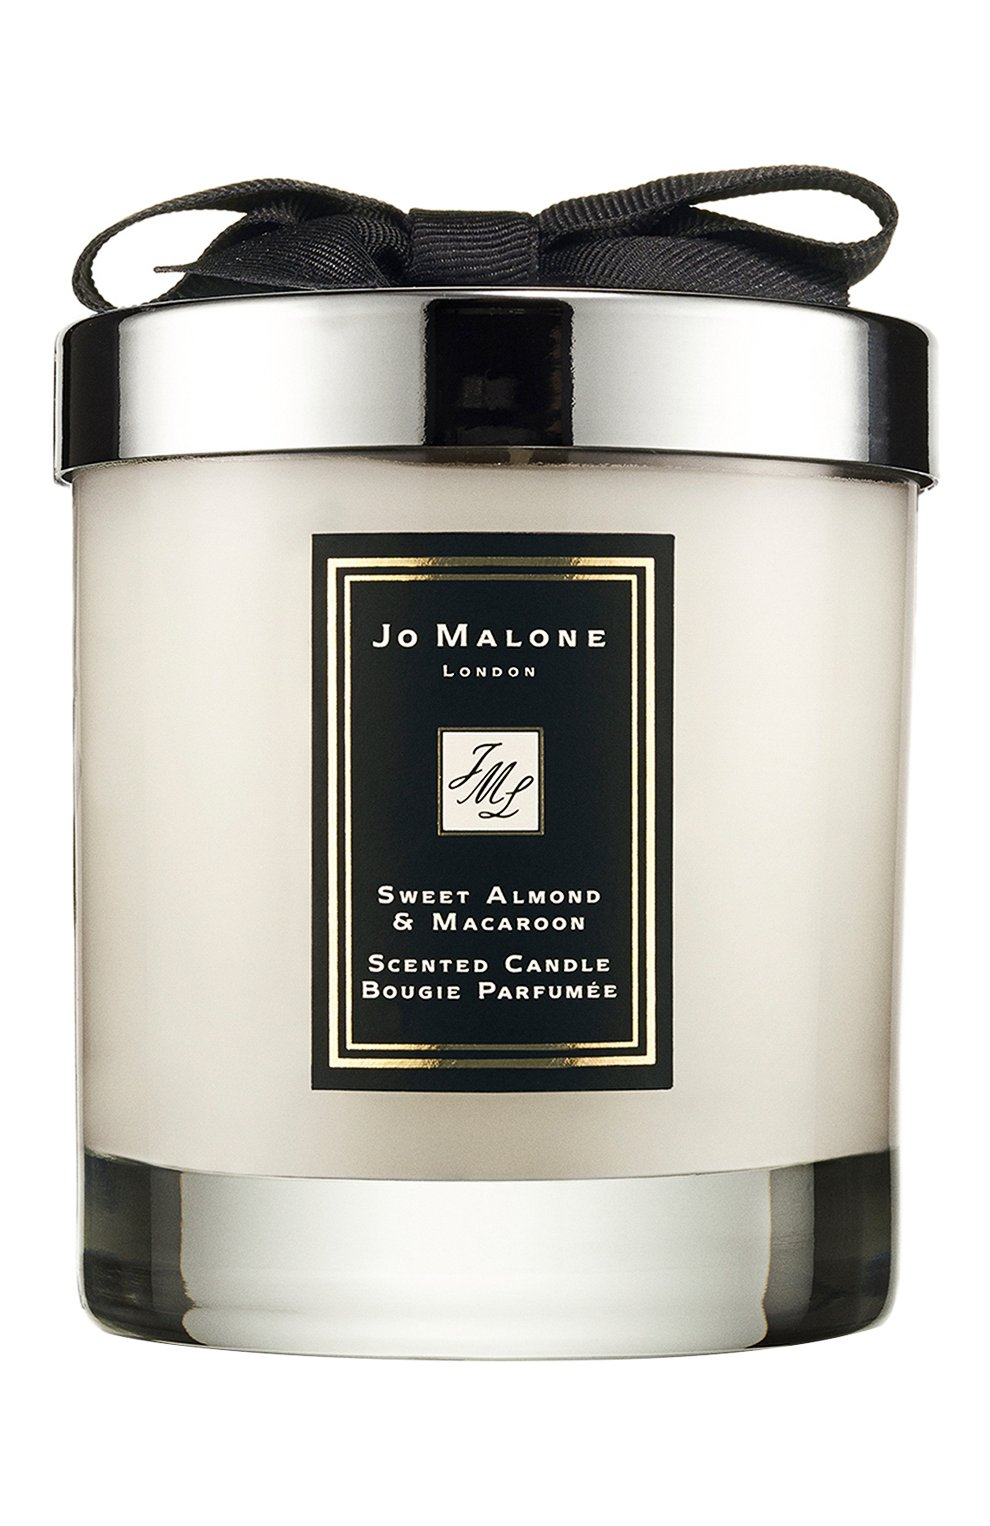 Свеча ароматная Sweet Almond Macaroon Jo Malone London  | Фото №1